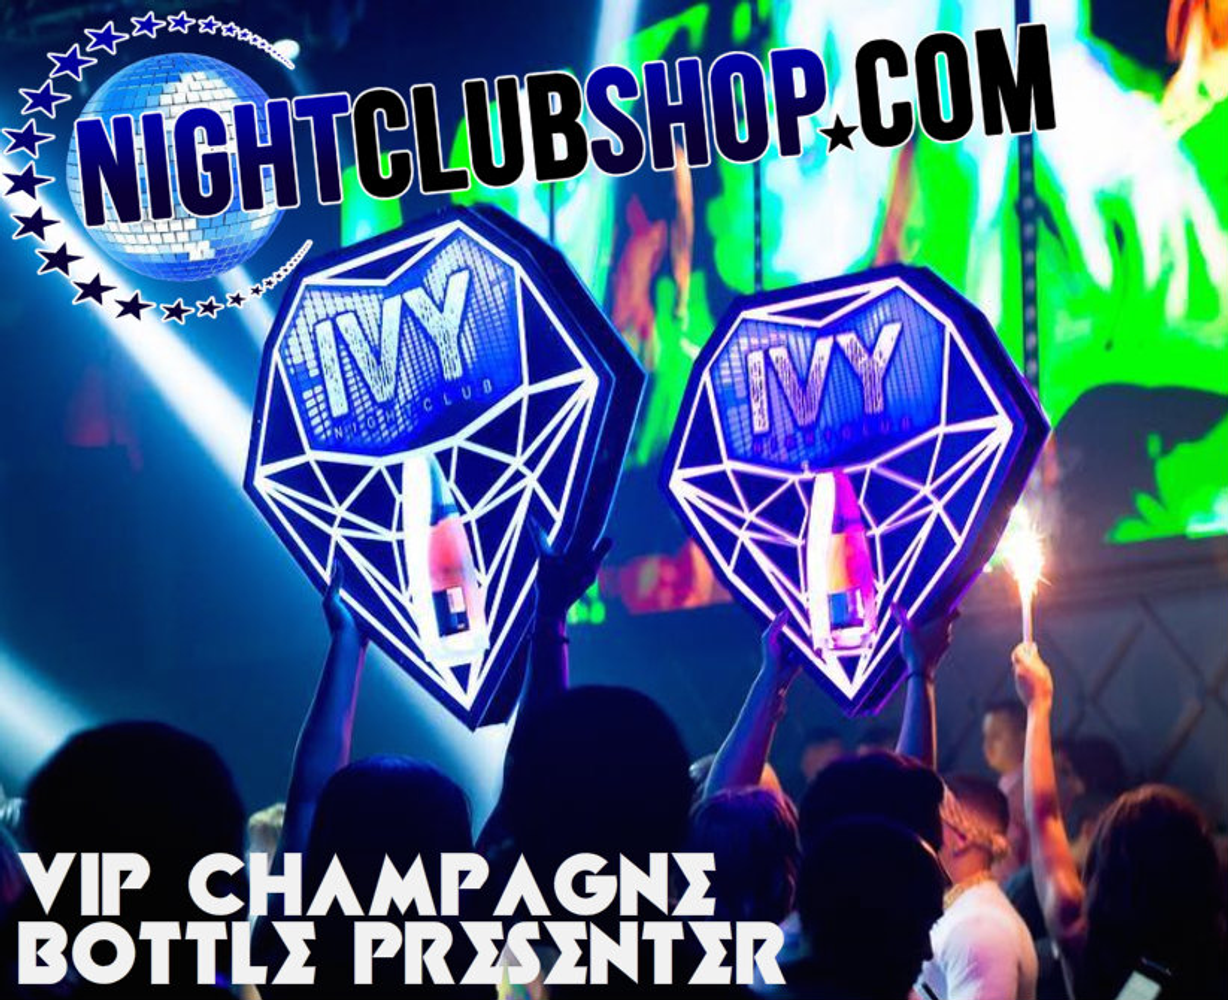 Diamond, Champagne,Bottle,service,caddie,caddy,presenter, carrier,holder,tray, LED, Light up, Bottles, VIP, Plaque,Shield,VIP tray